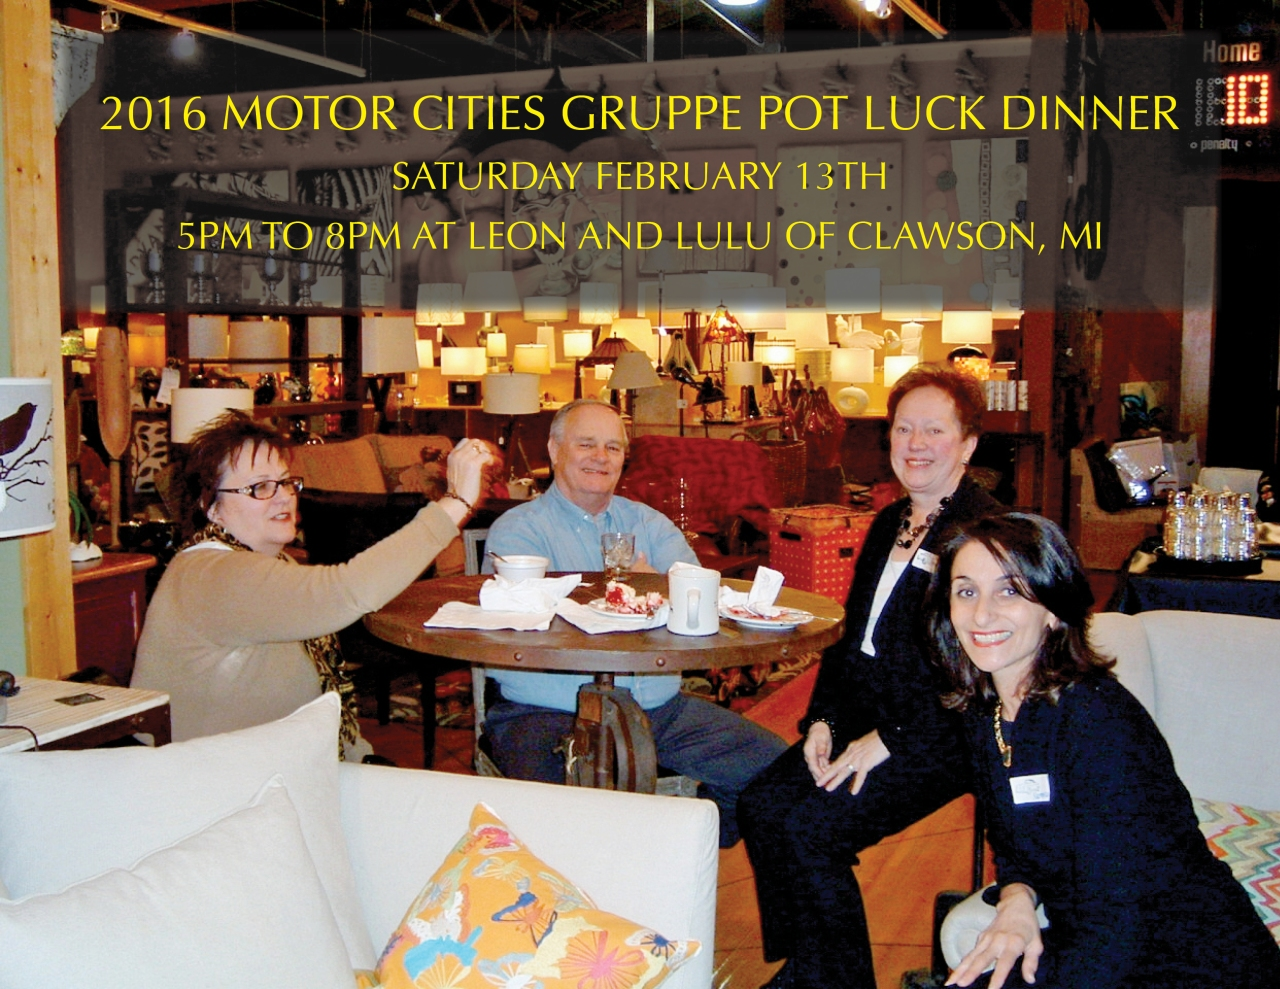 2016 MOTOR CITIES GRUPPE POT LUCK DINNER.jpg